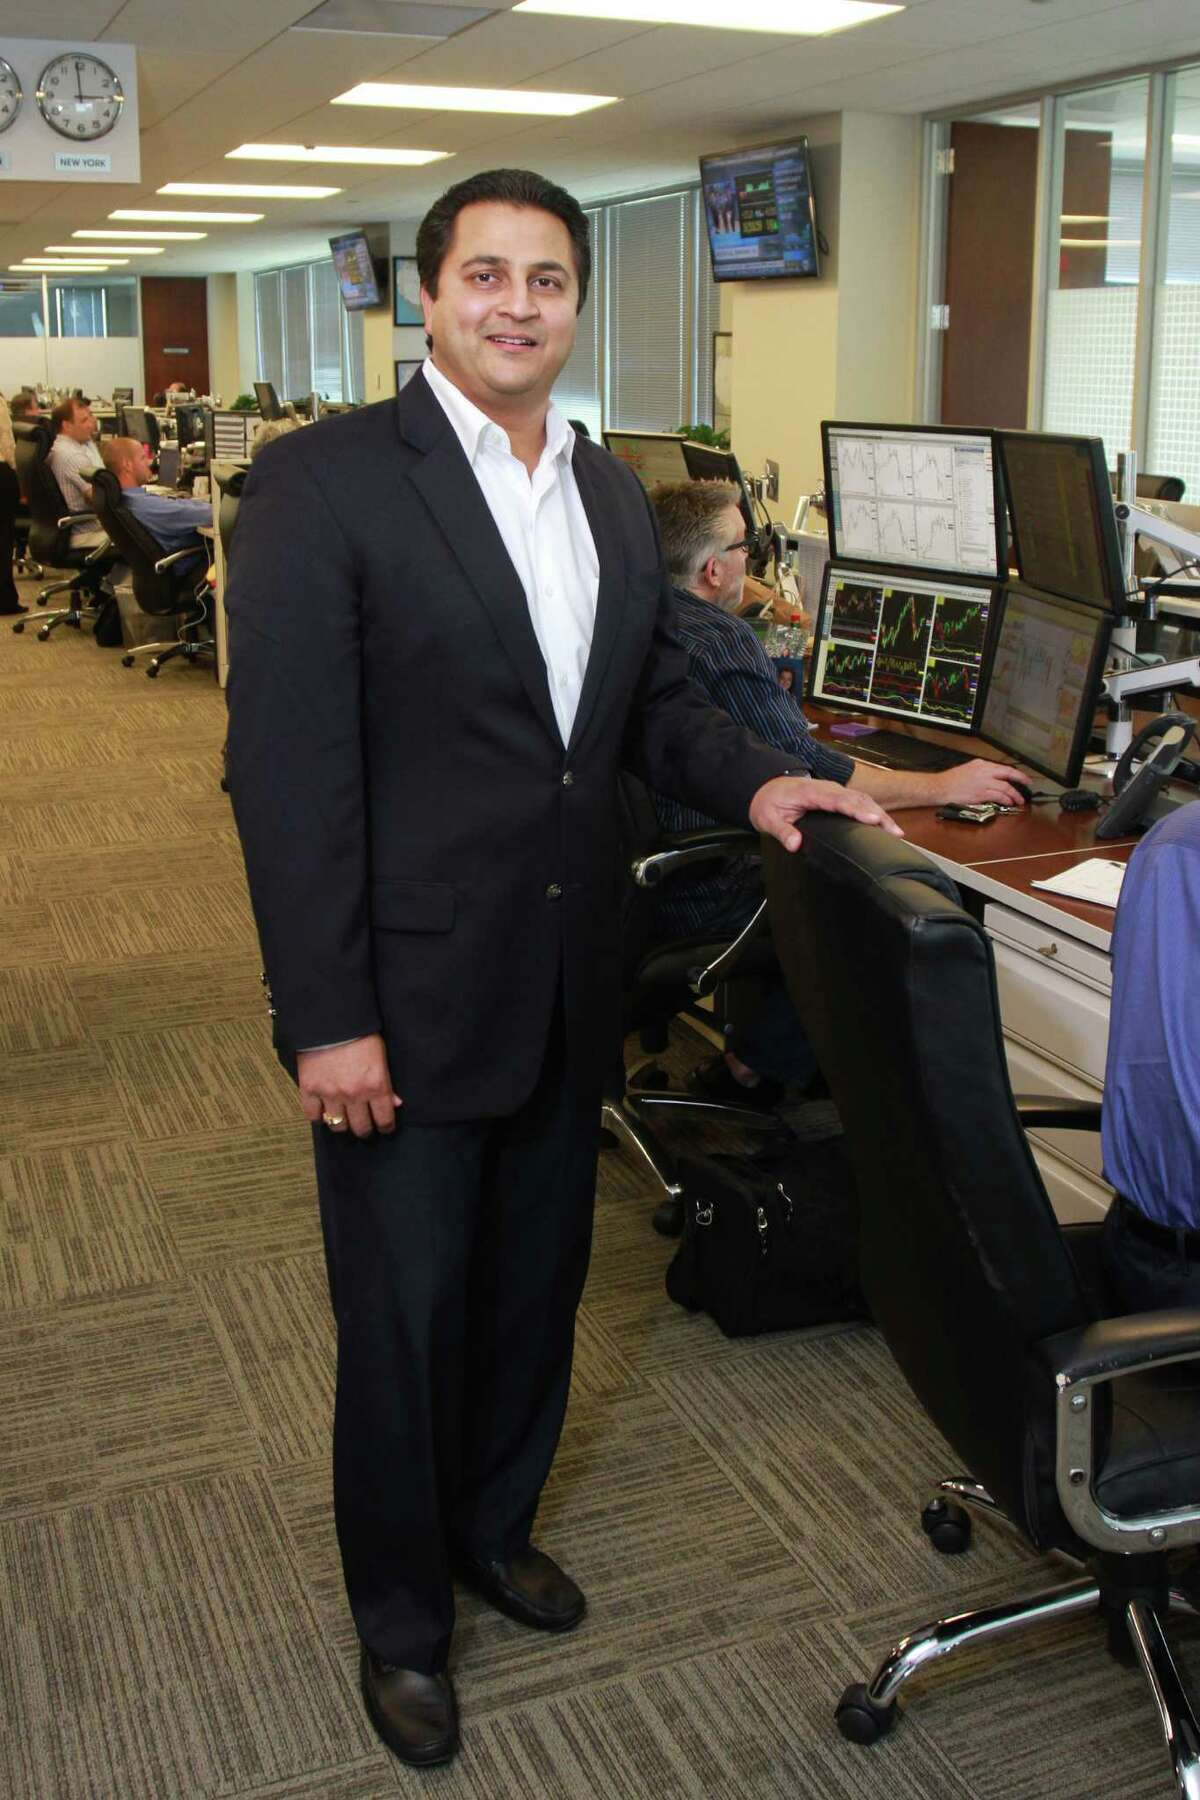 (For the Chronicle/Gary Fountain, May 19, 2014) Amit Bhandari on the trading floor of BioUrja. Amit is the founder and CEO of BioUrja, an energy commodities trading company focusing on the purchase and sale of ethanol, petroleum products, and crude oil.